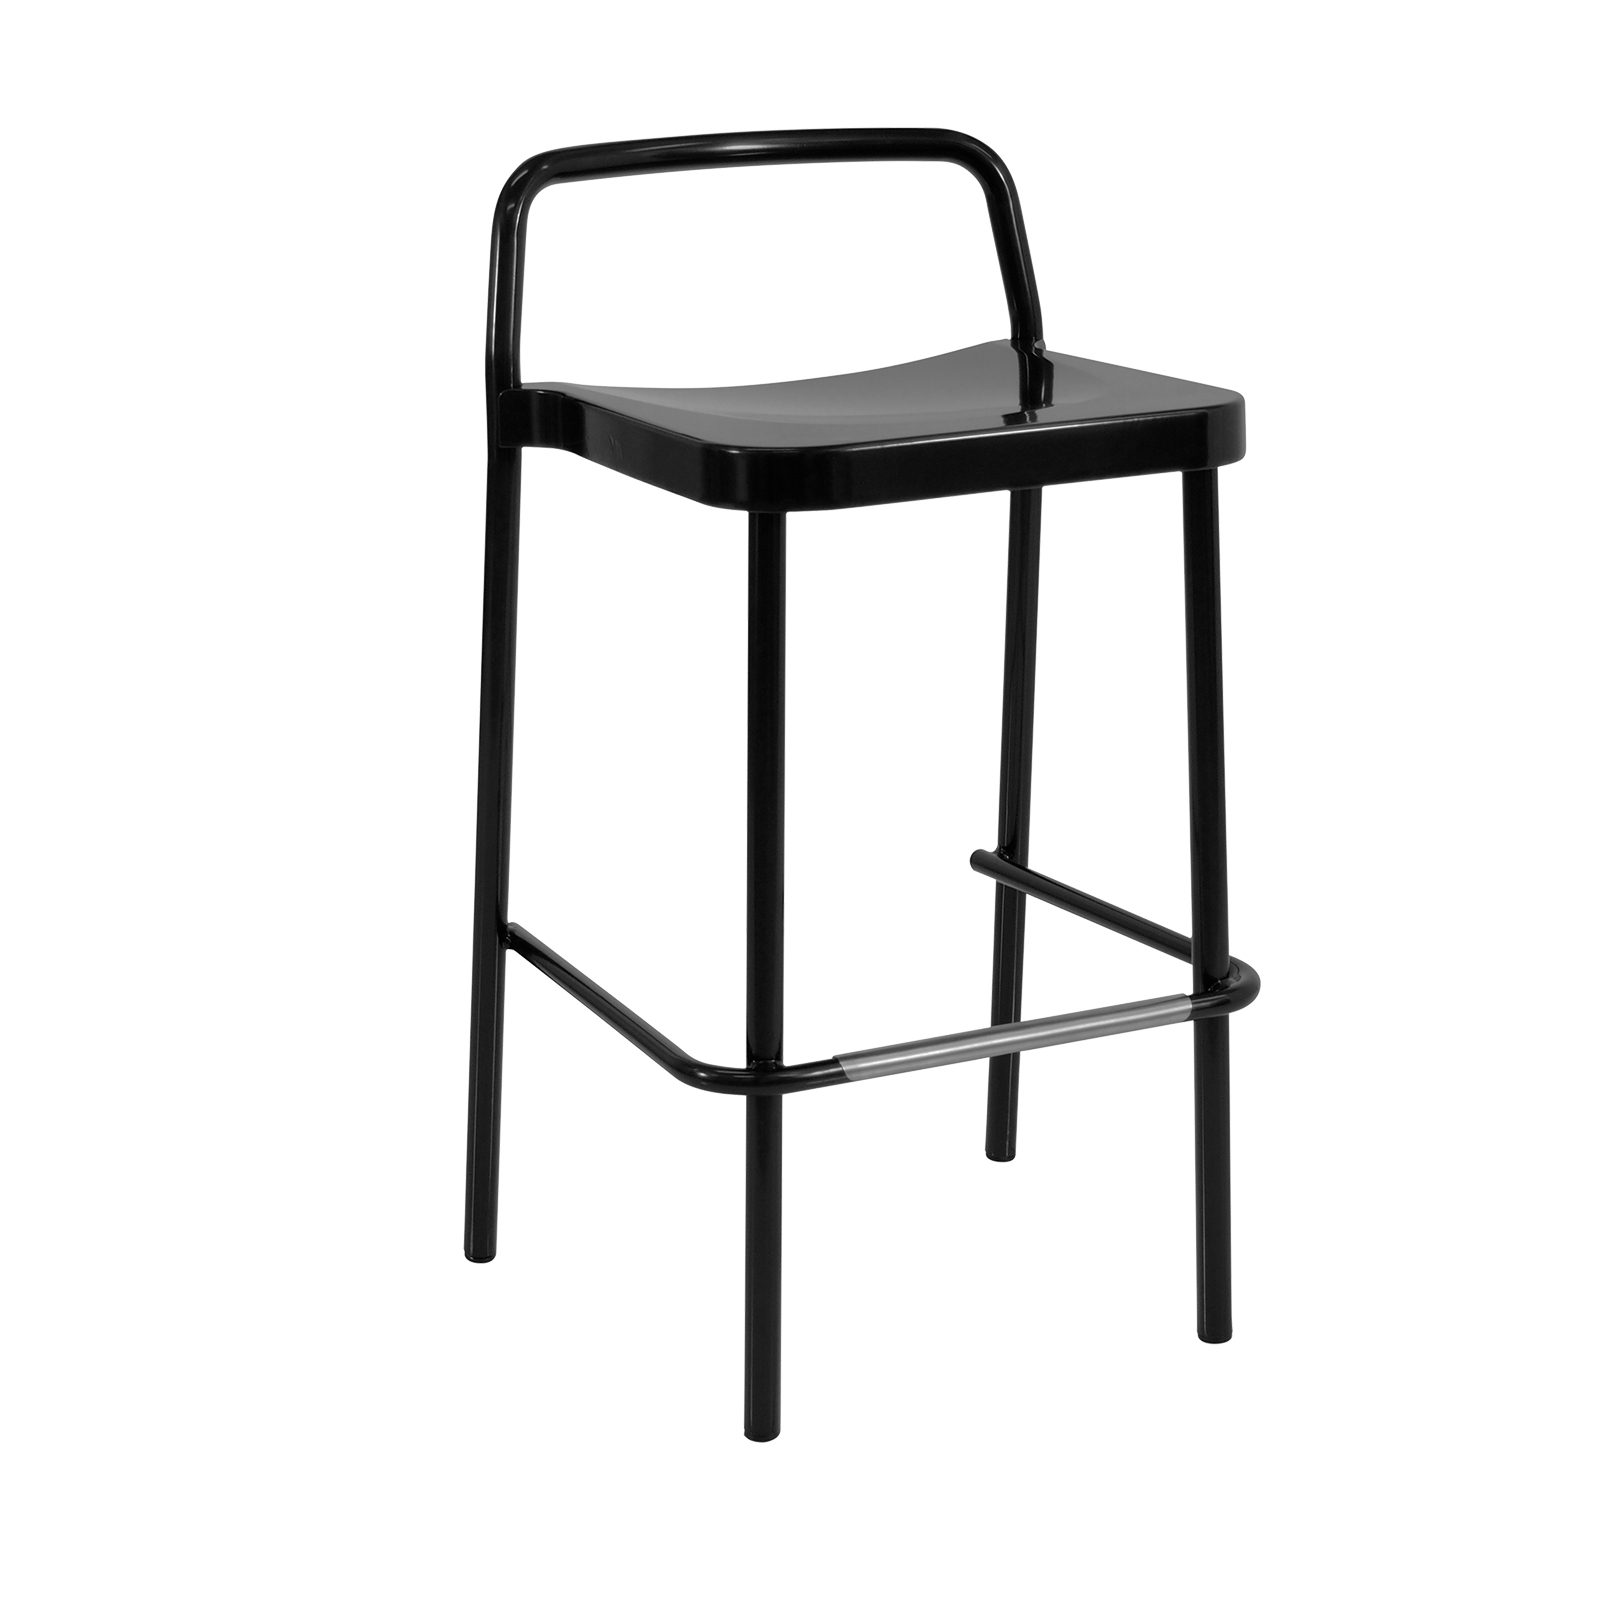 emuamericas, llc 283 bar stool, stacking, outdoor